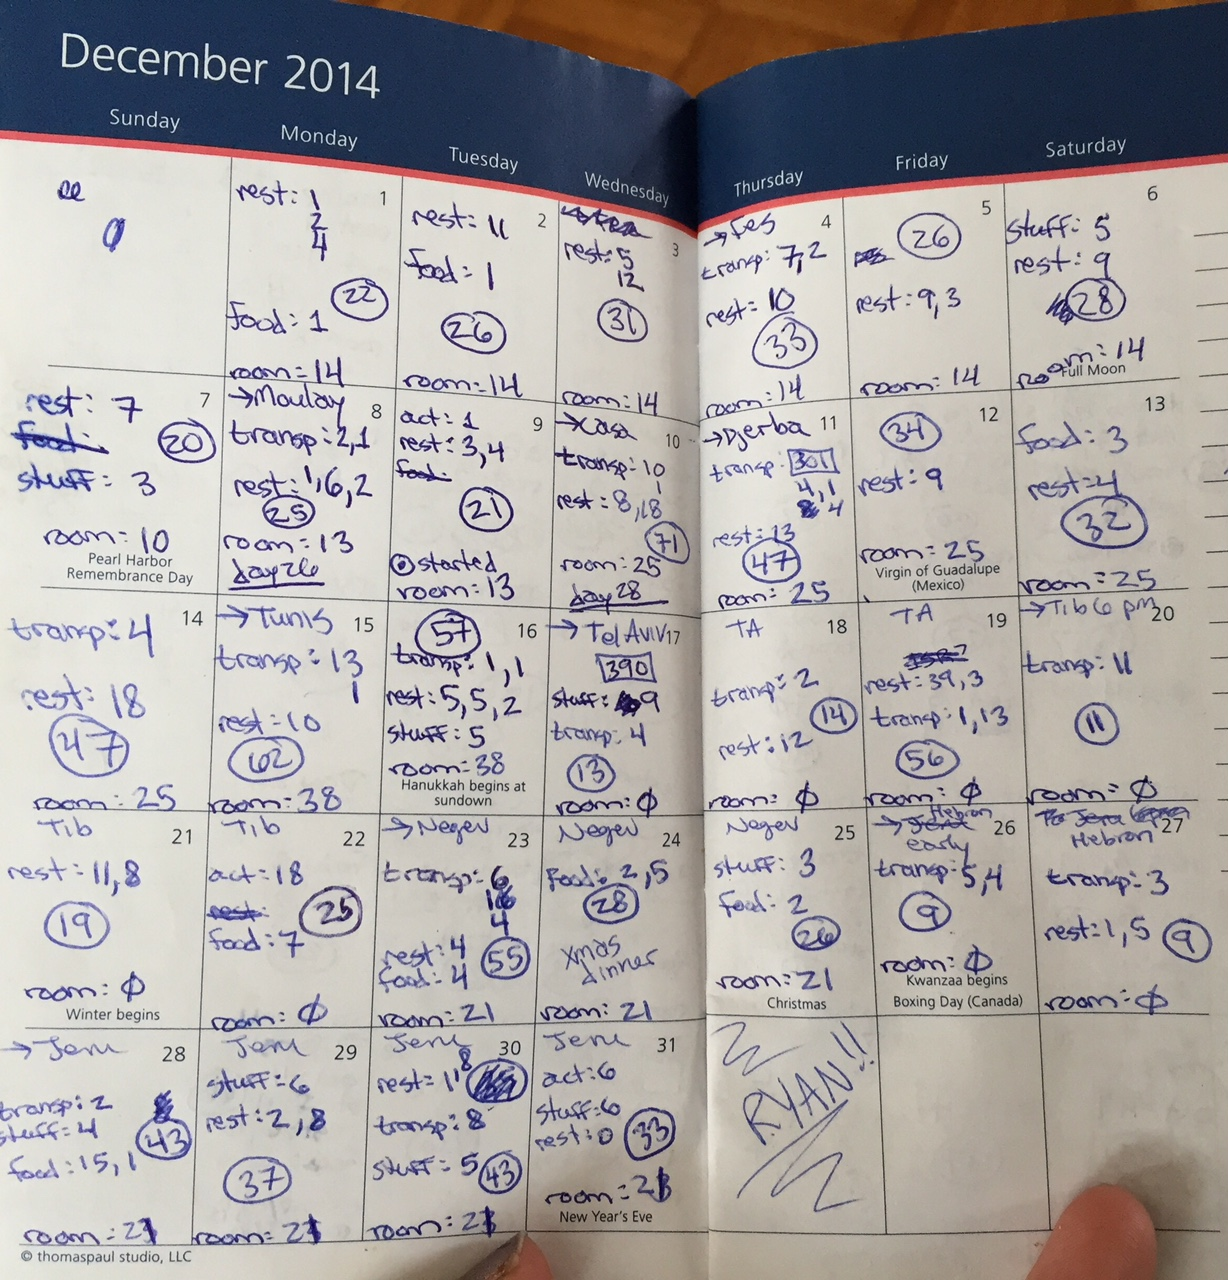 The calendar I use to [obsessively] keep track of my daily expenses while traveling.